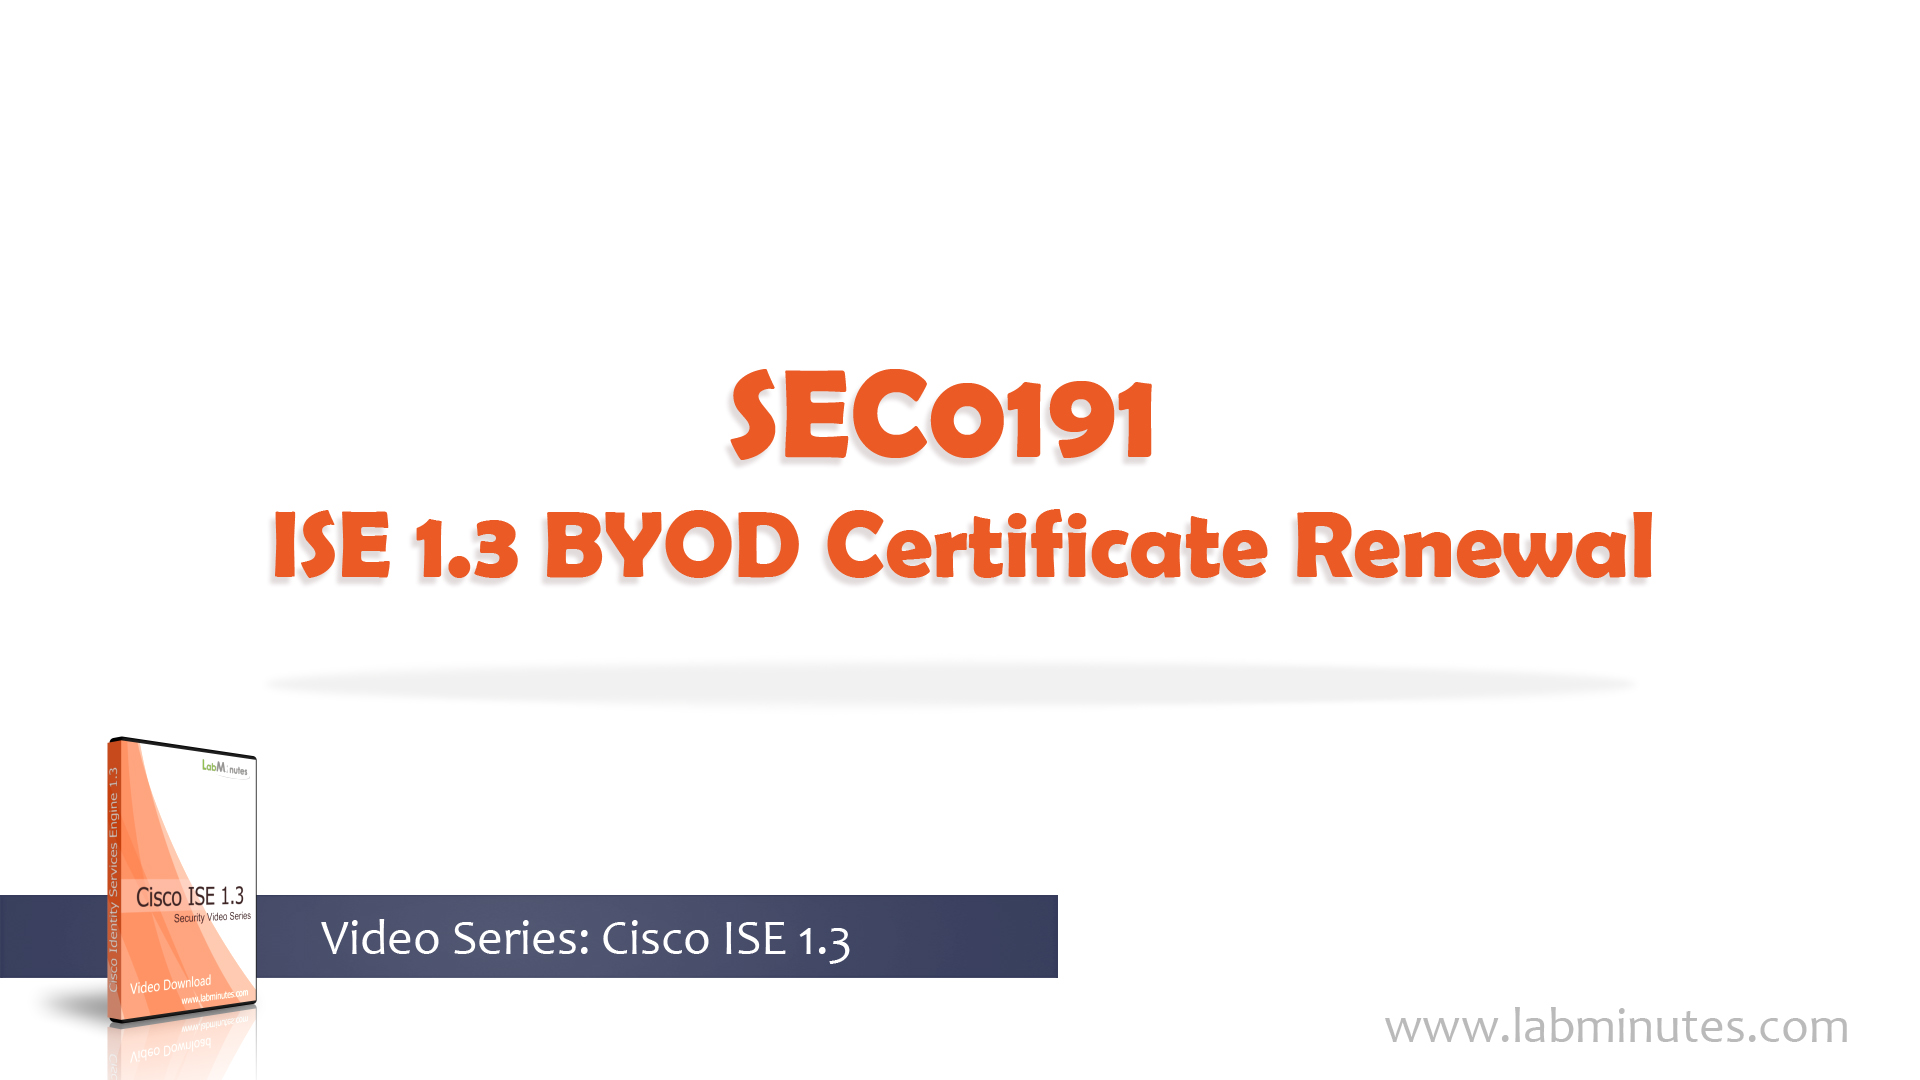 How To Configure Cisco Ise 13 Byod Certificate Renewal